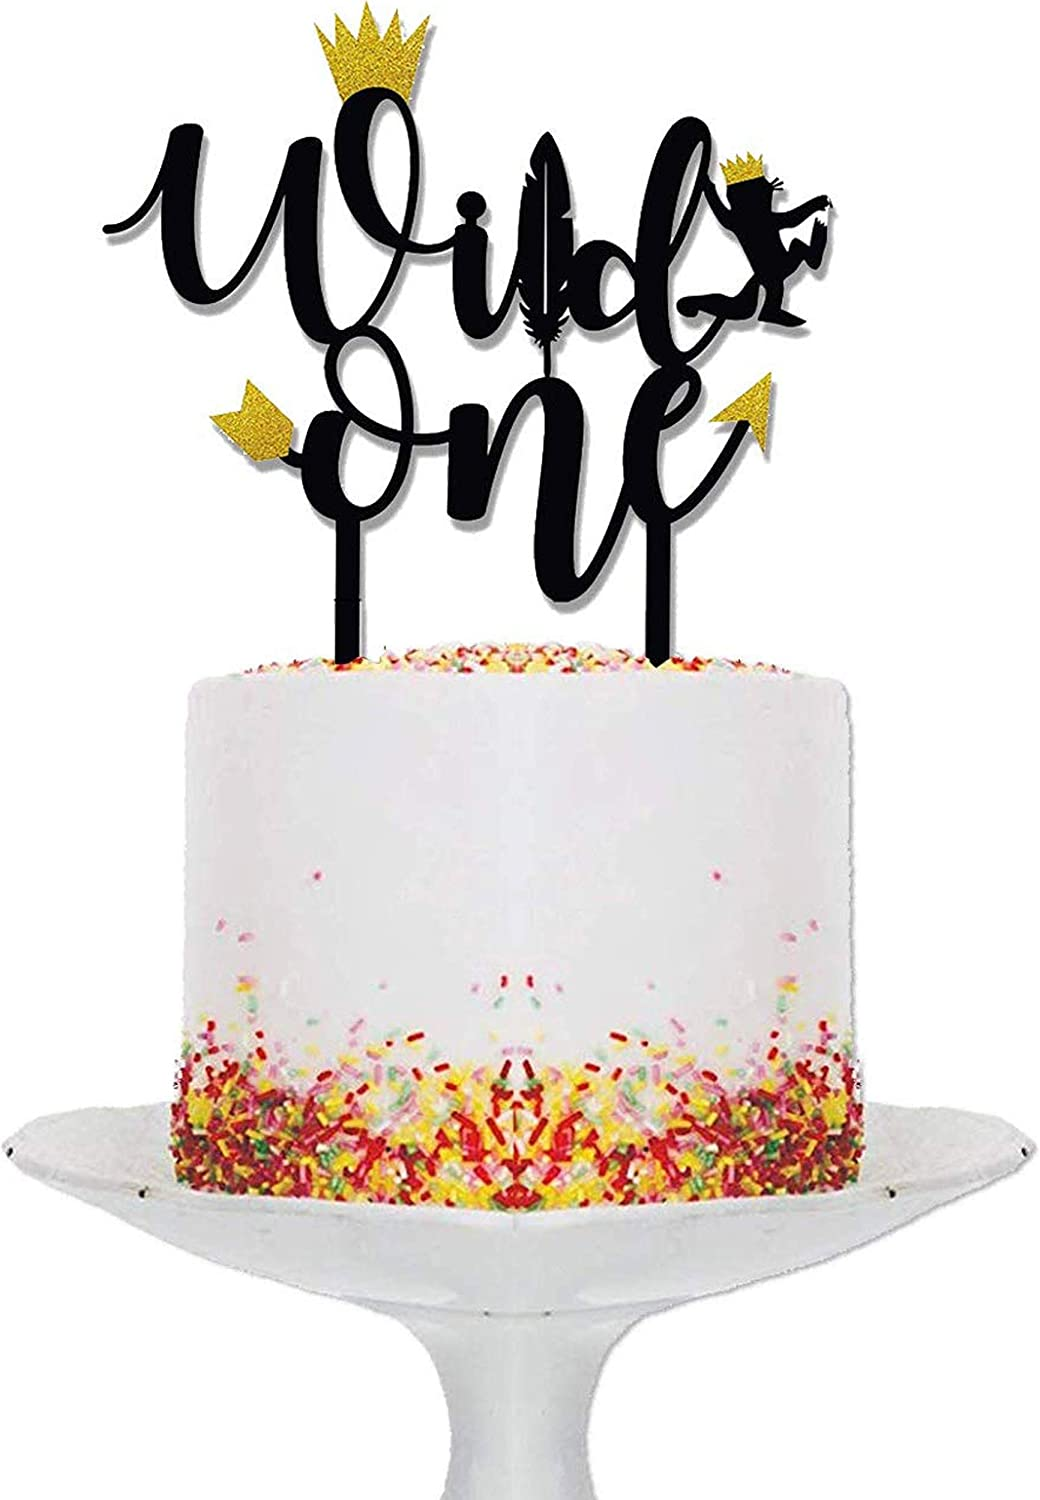 Wild One Birthday Decorations I Topper Fees free Tucson Mall Black and Cake